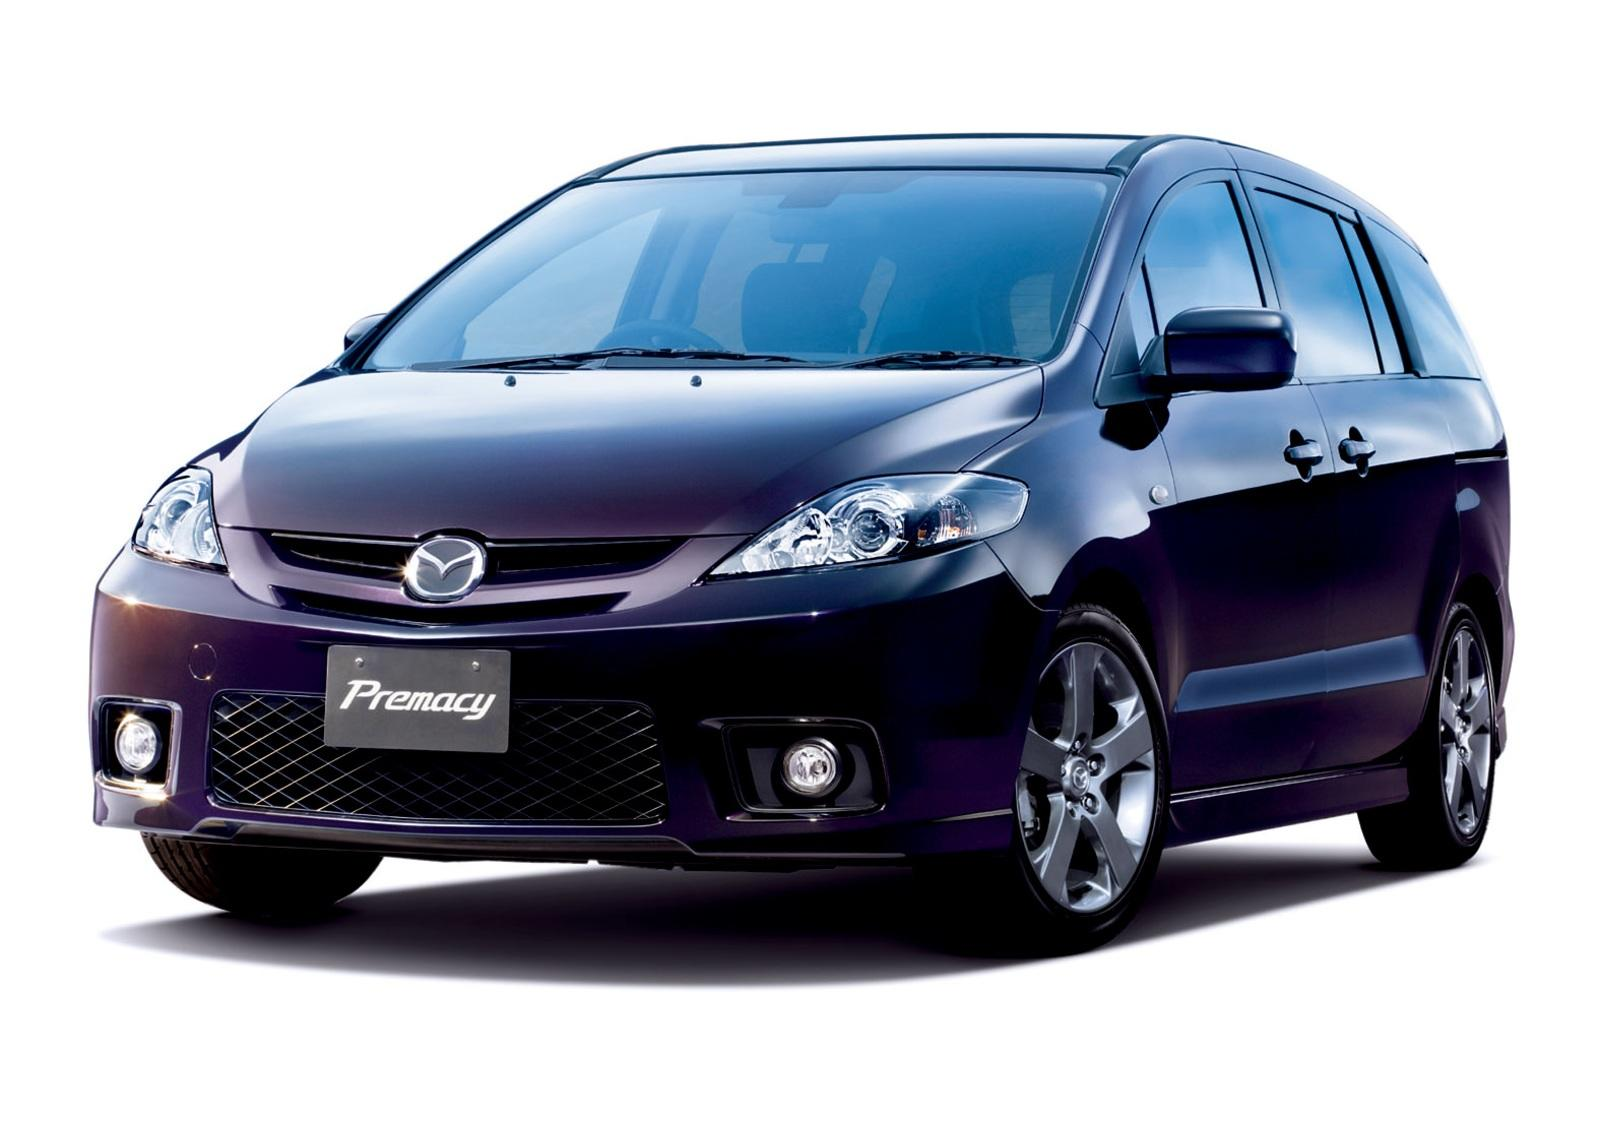 2007 mazda premacy review top speed. Black Bedroom Furniture Sets. Home Design Ideas